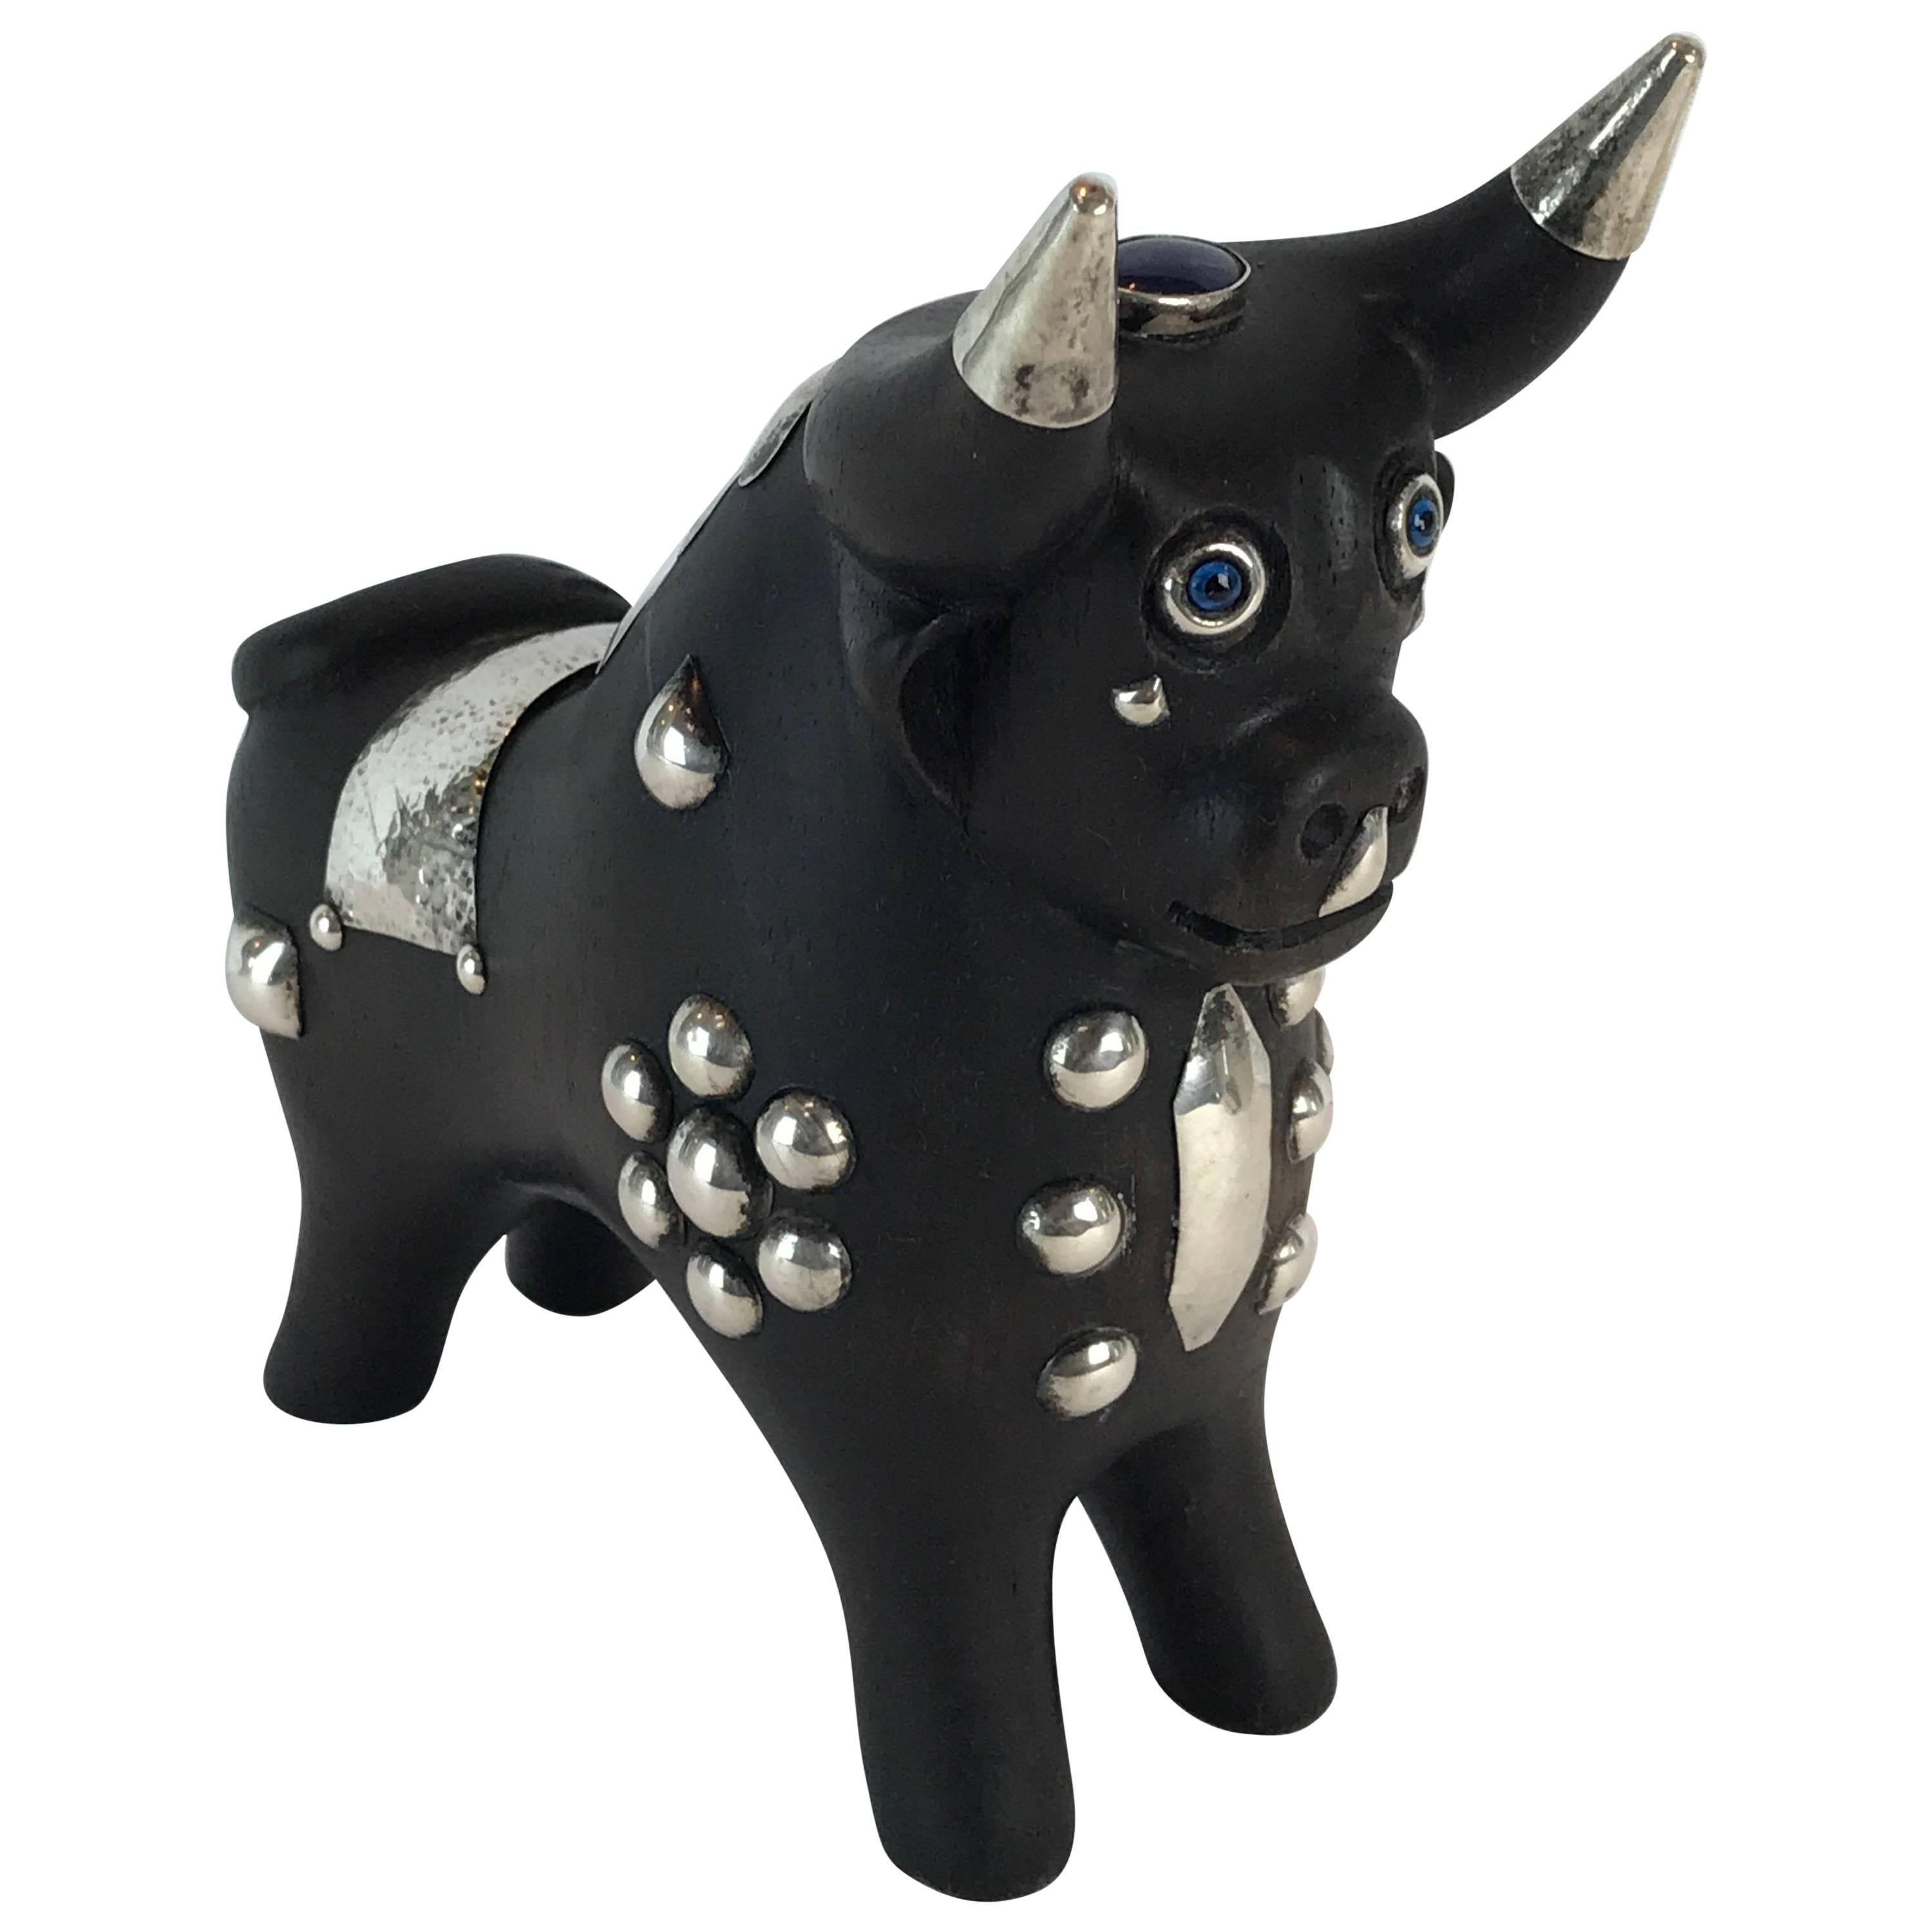 Midcentury Carved Wood and Silver Taurus Bull Sculpture